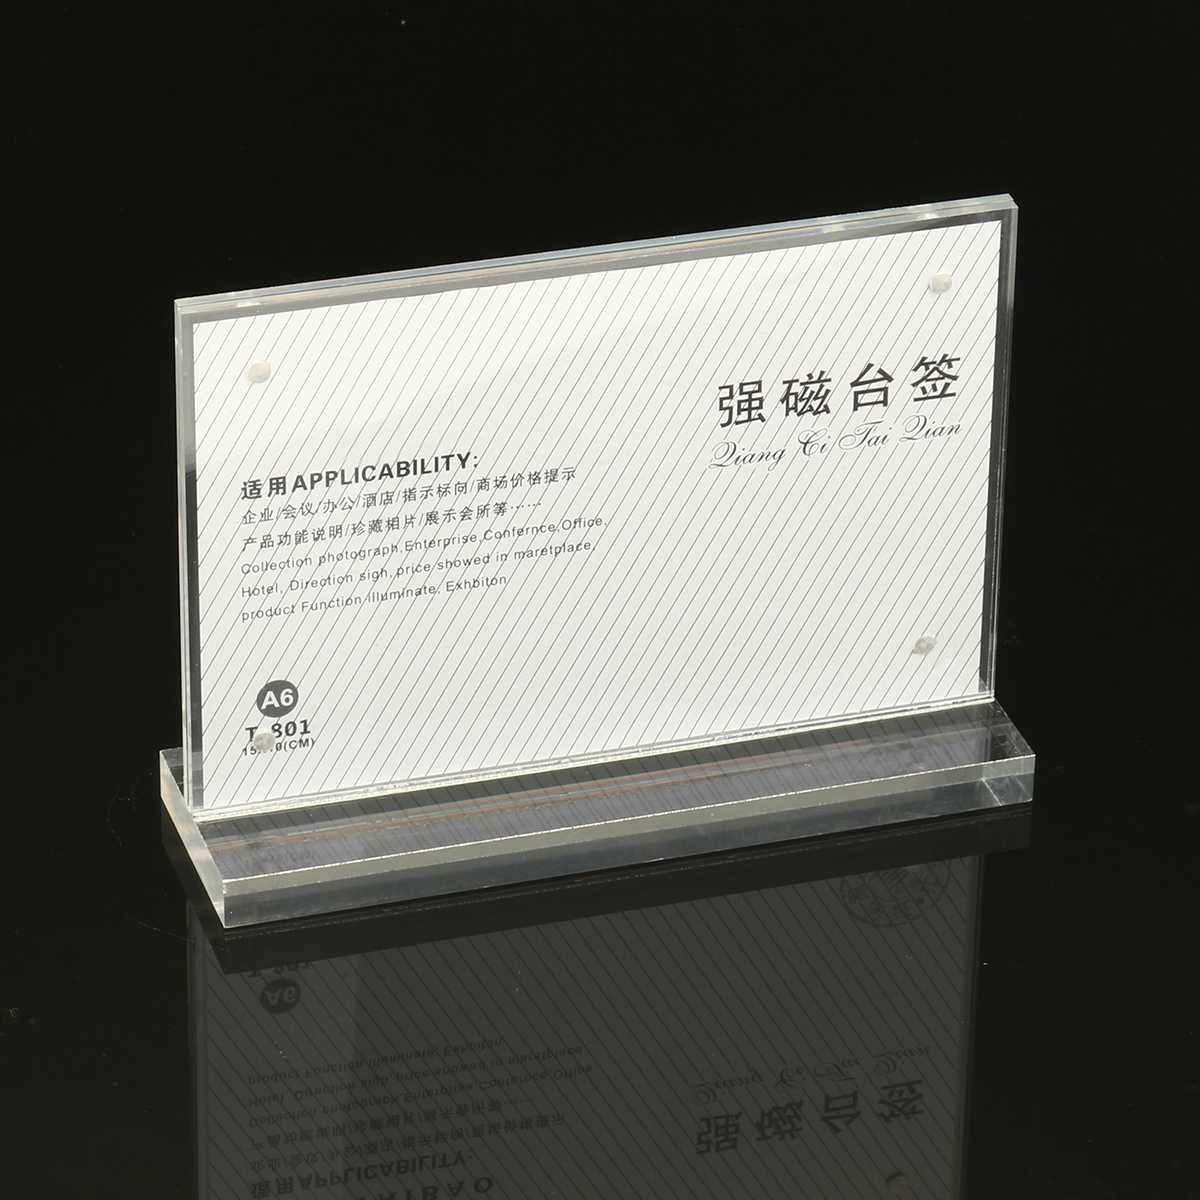 Acrylic Ferromagnetic Table Label Panel 9mm Thick Base Office Desk Business Card Frame Photo Picture Banknote Price Label Holder